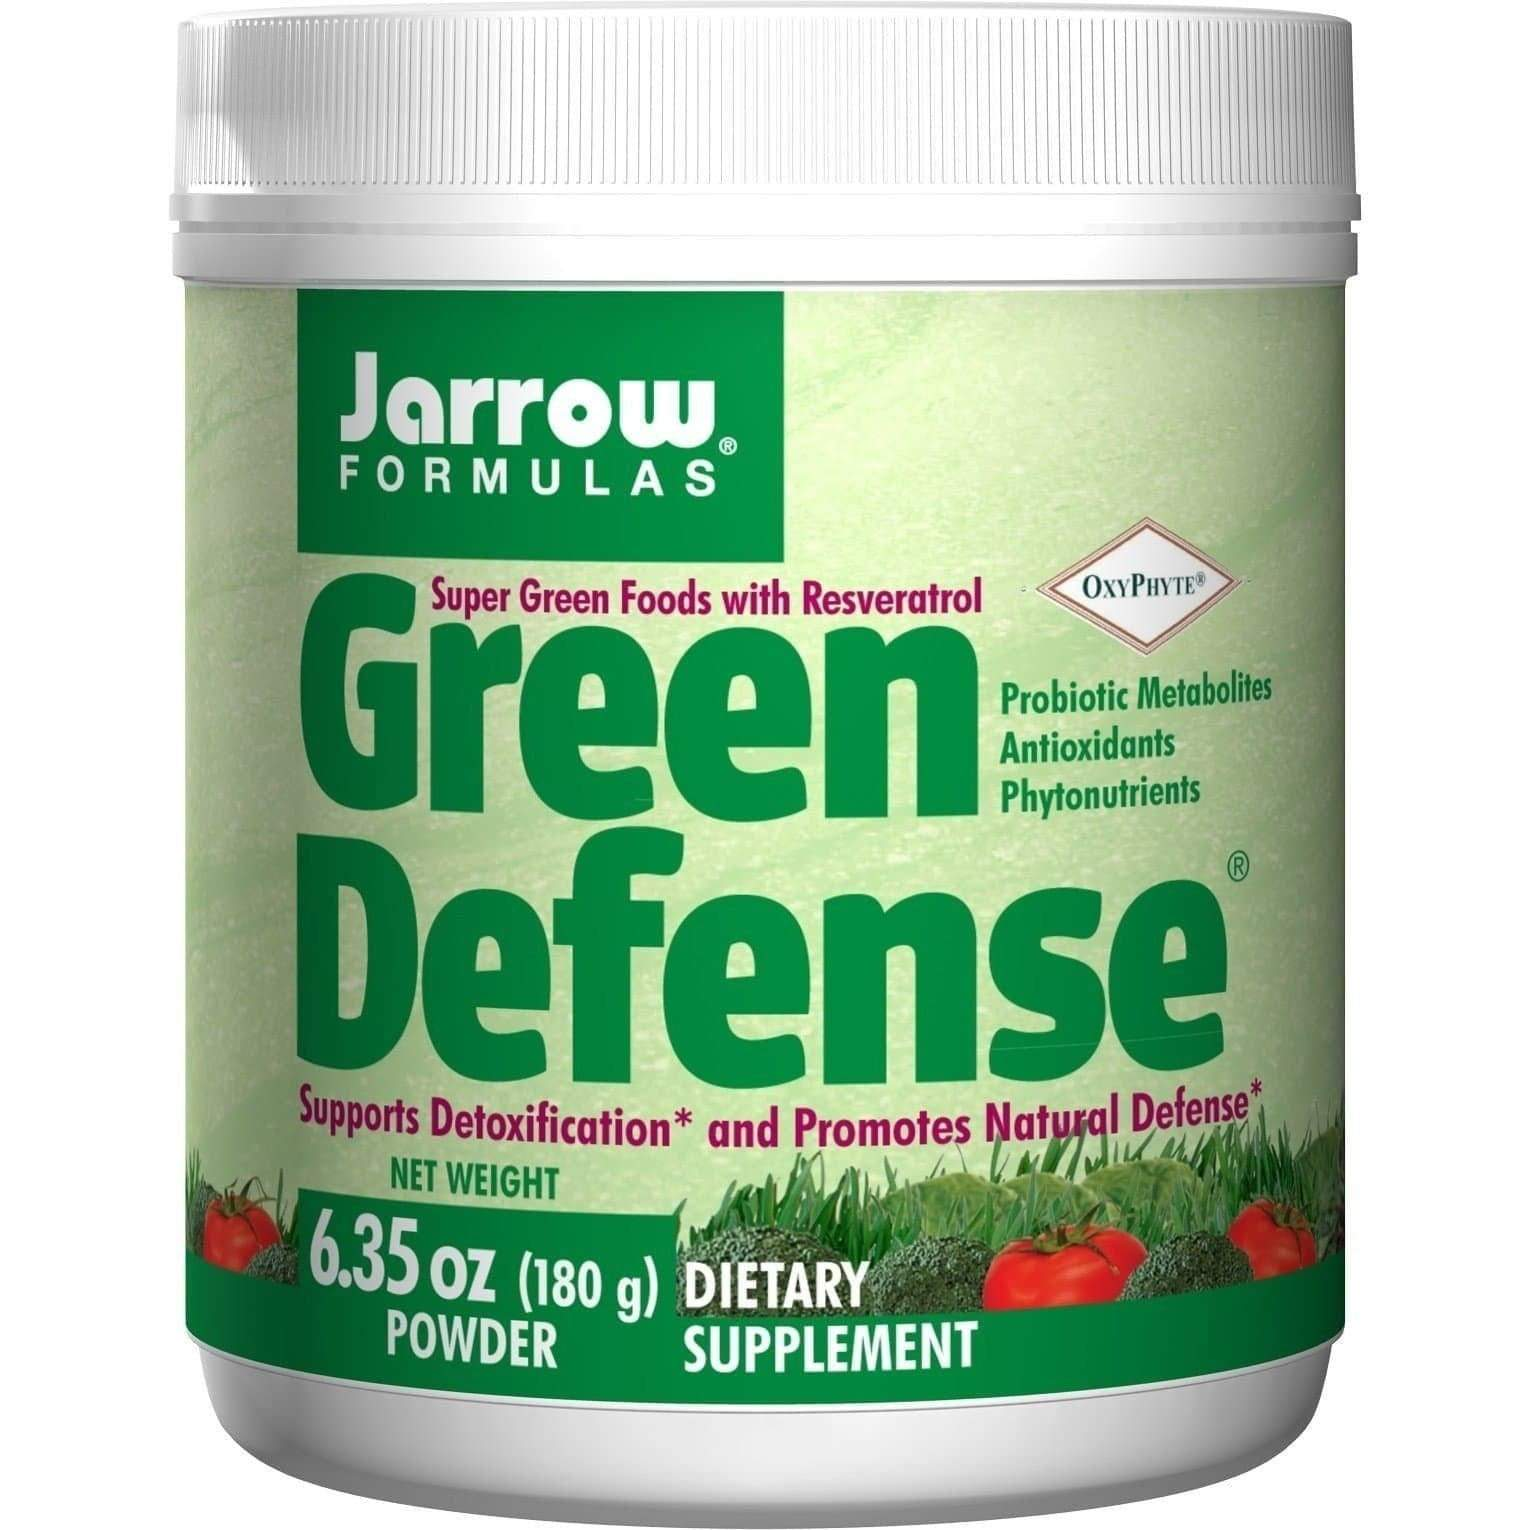 Jarrow Formulas Green Defense 180g